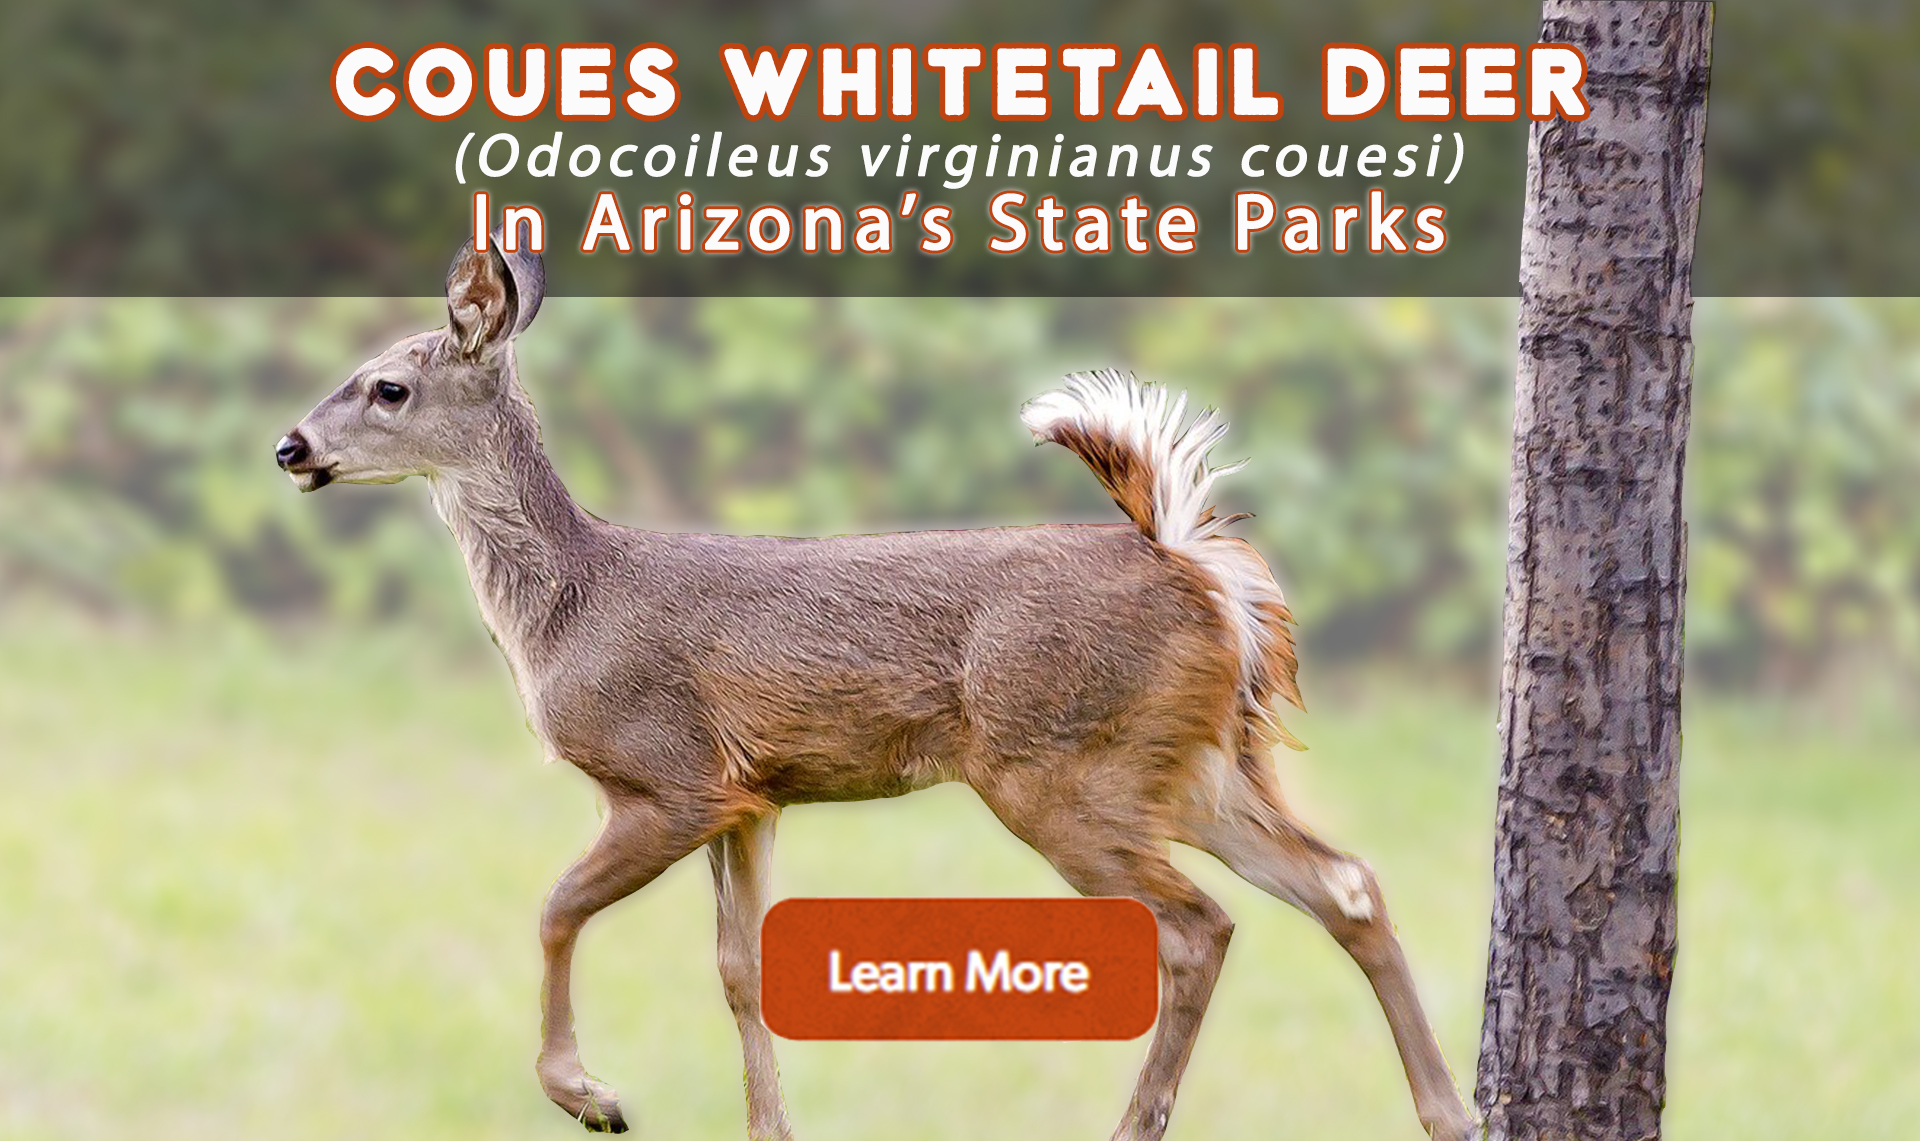 Learn about coues whitetail deer